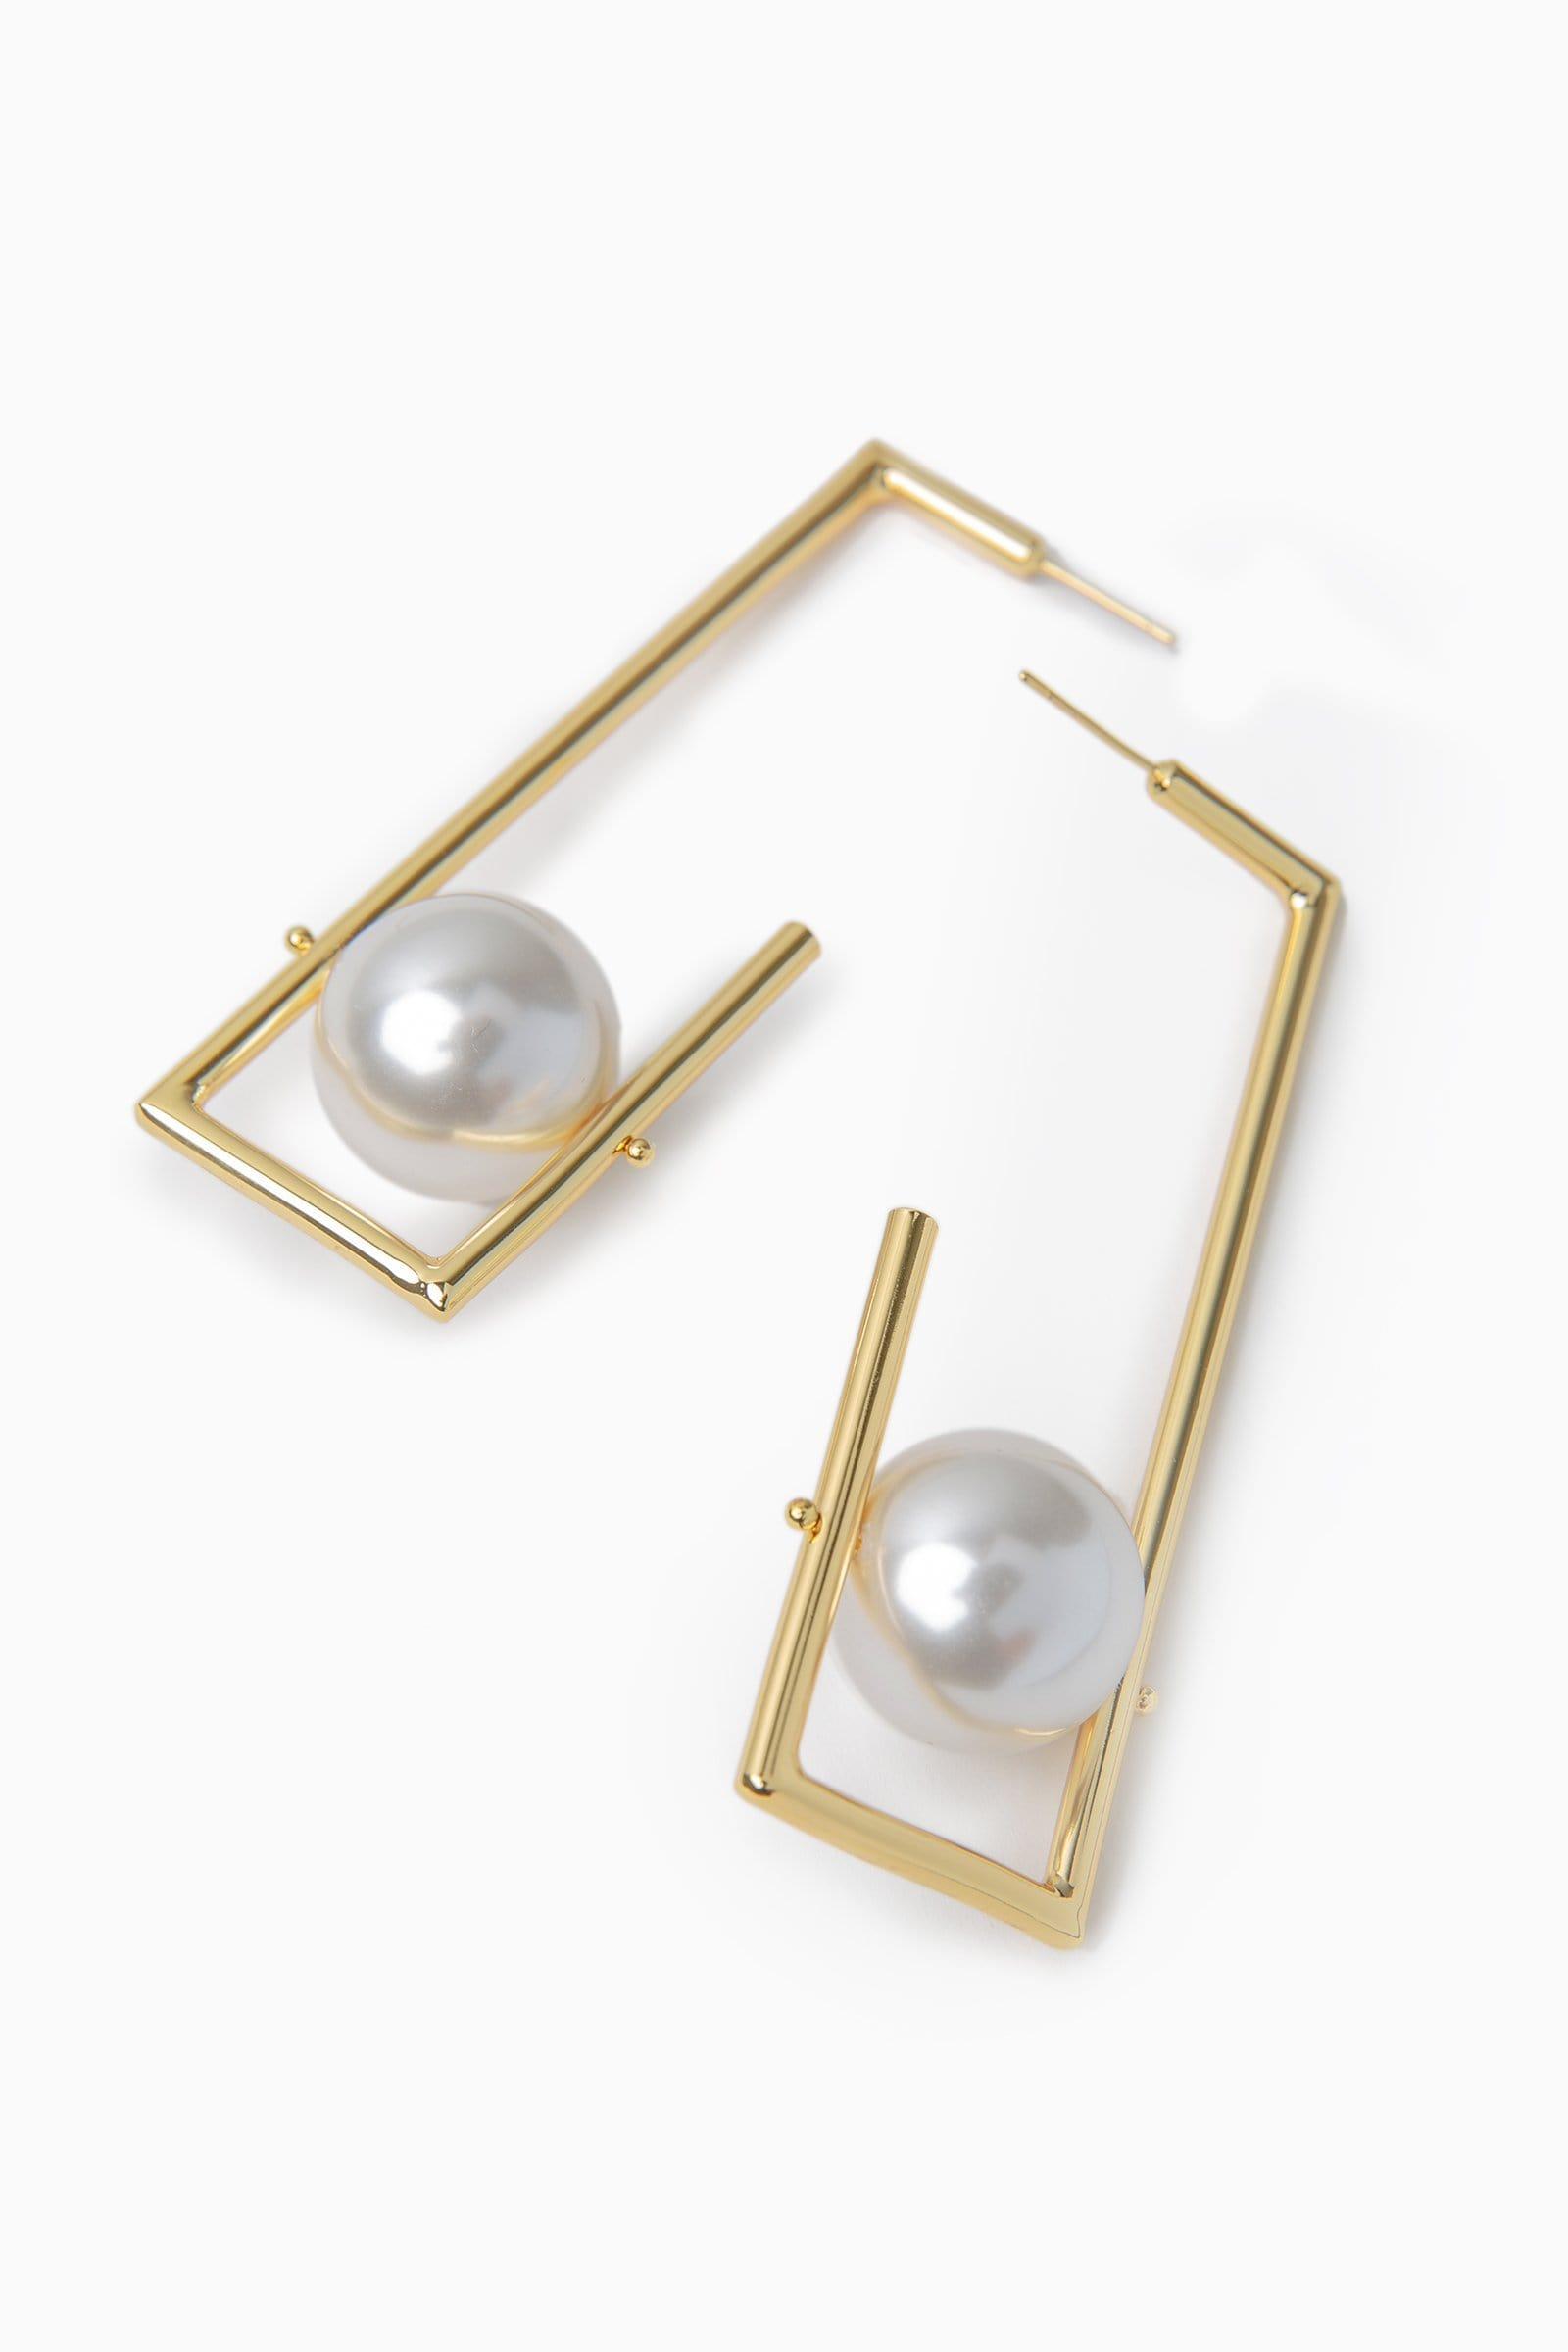 Gold colored rectangle earring with large faux pearl inside | J.ING women's accessories